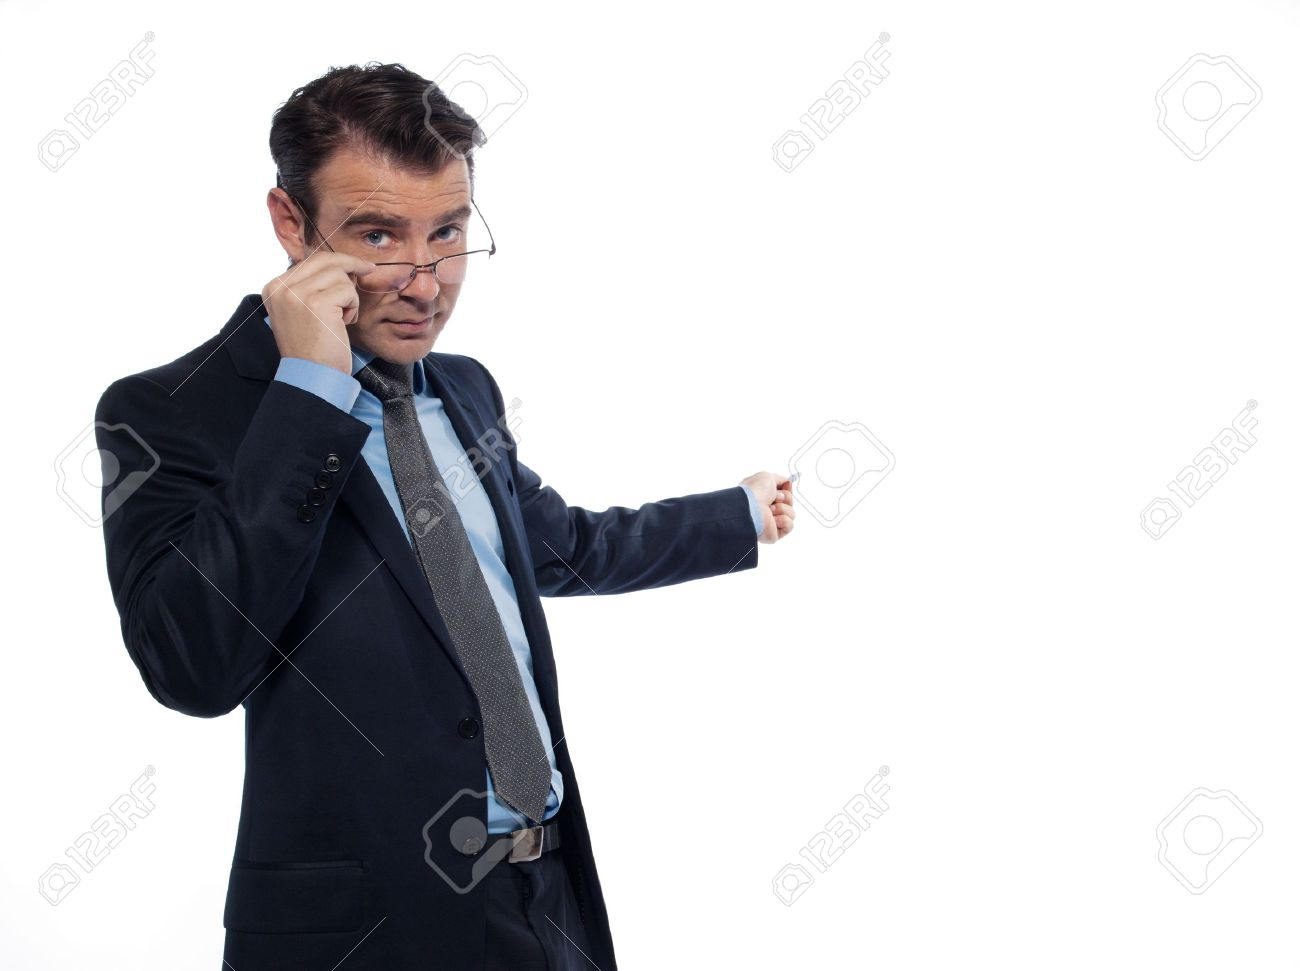 one caucasian man professor teaching beckoning pointing empty copy space  isolated studio on white background Stock Photo - 12710735